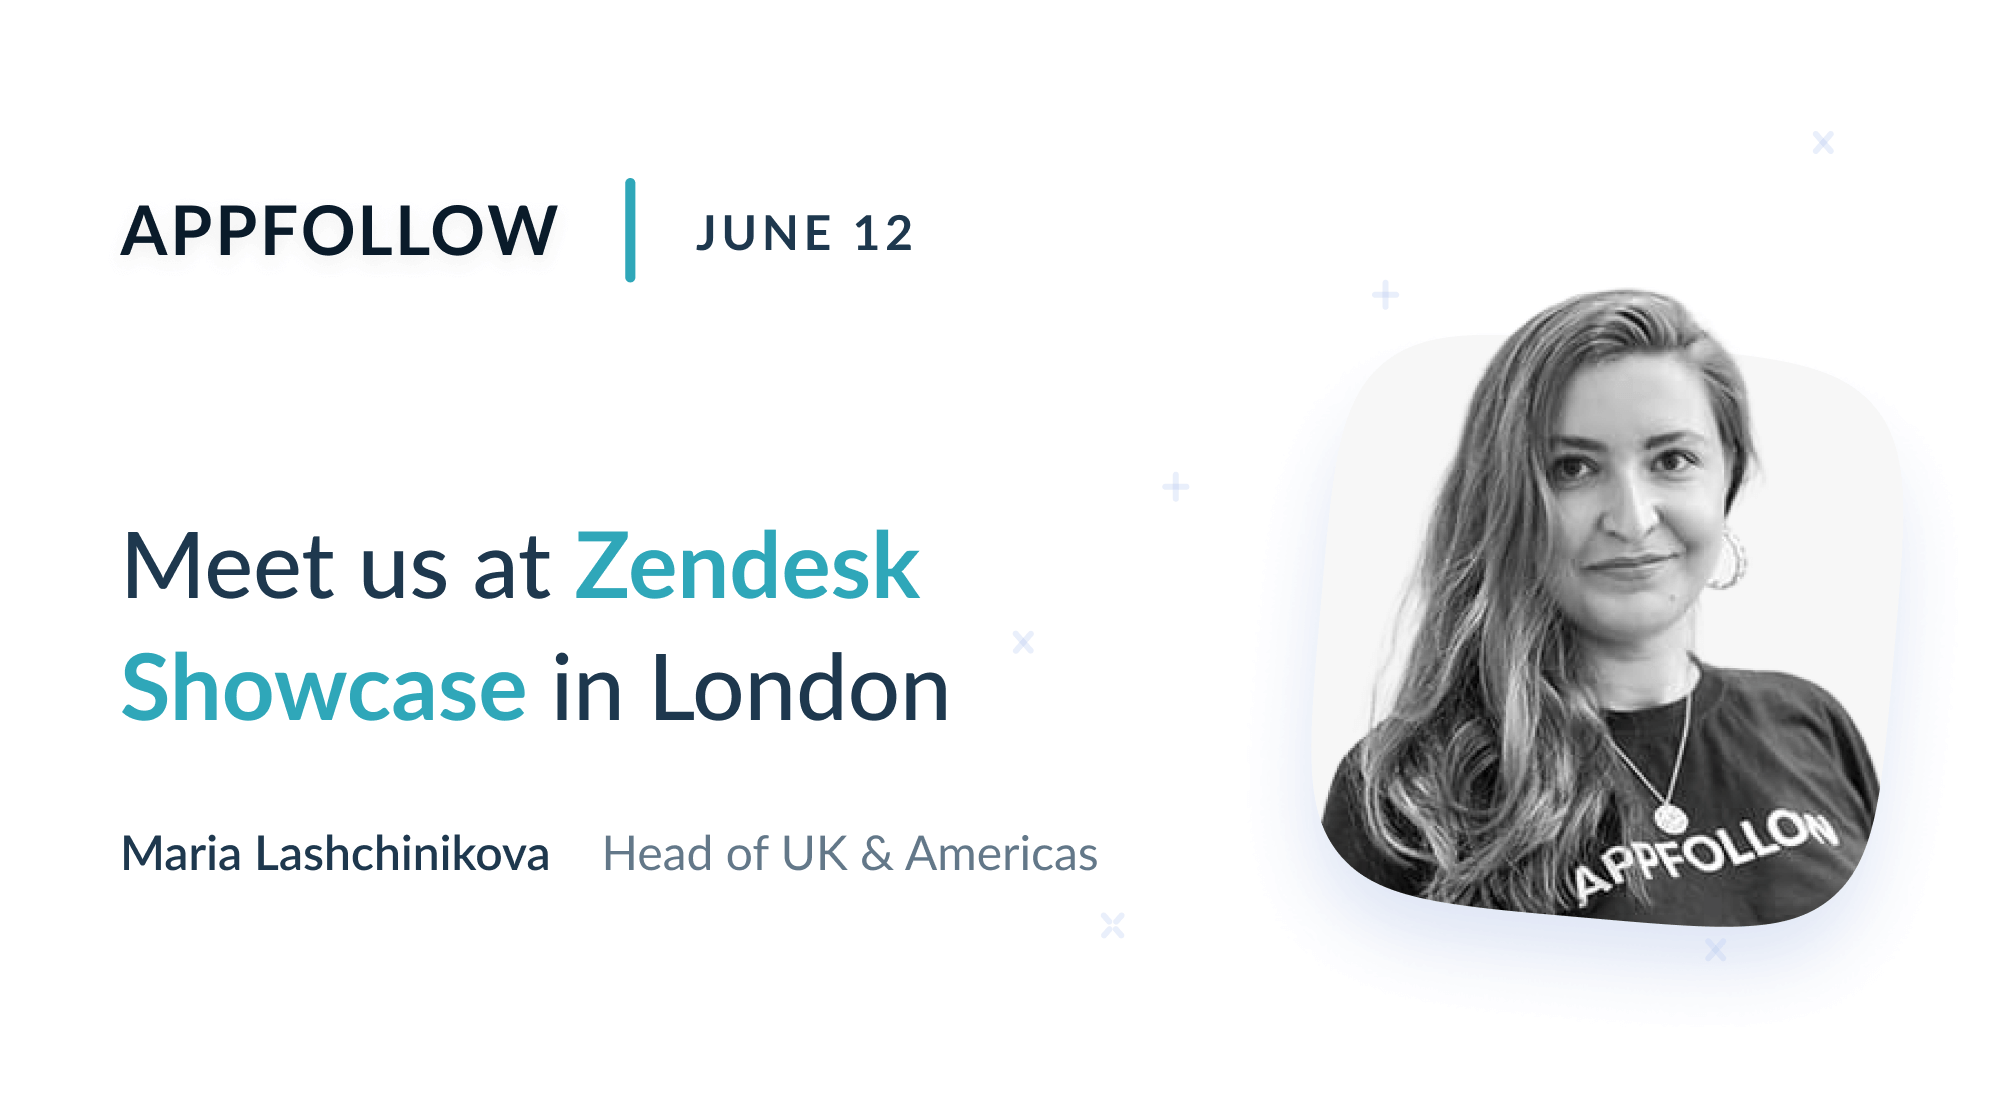 Meet AppFollow at Zendesk Showcase London